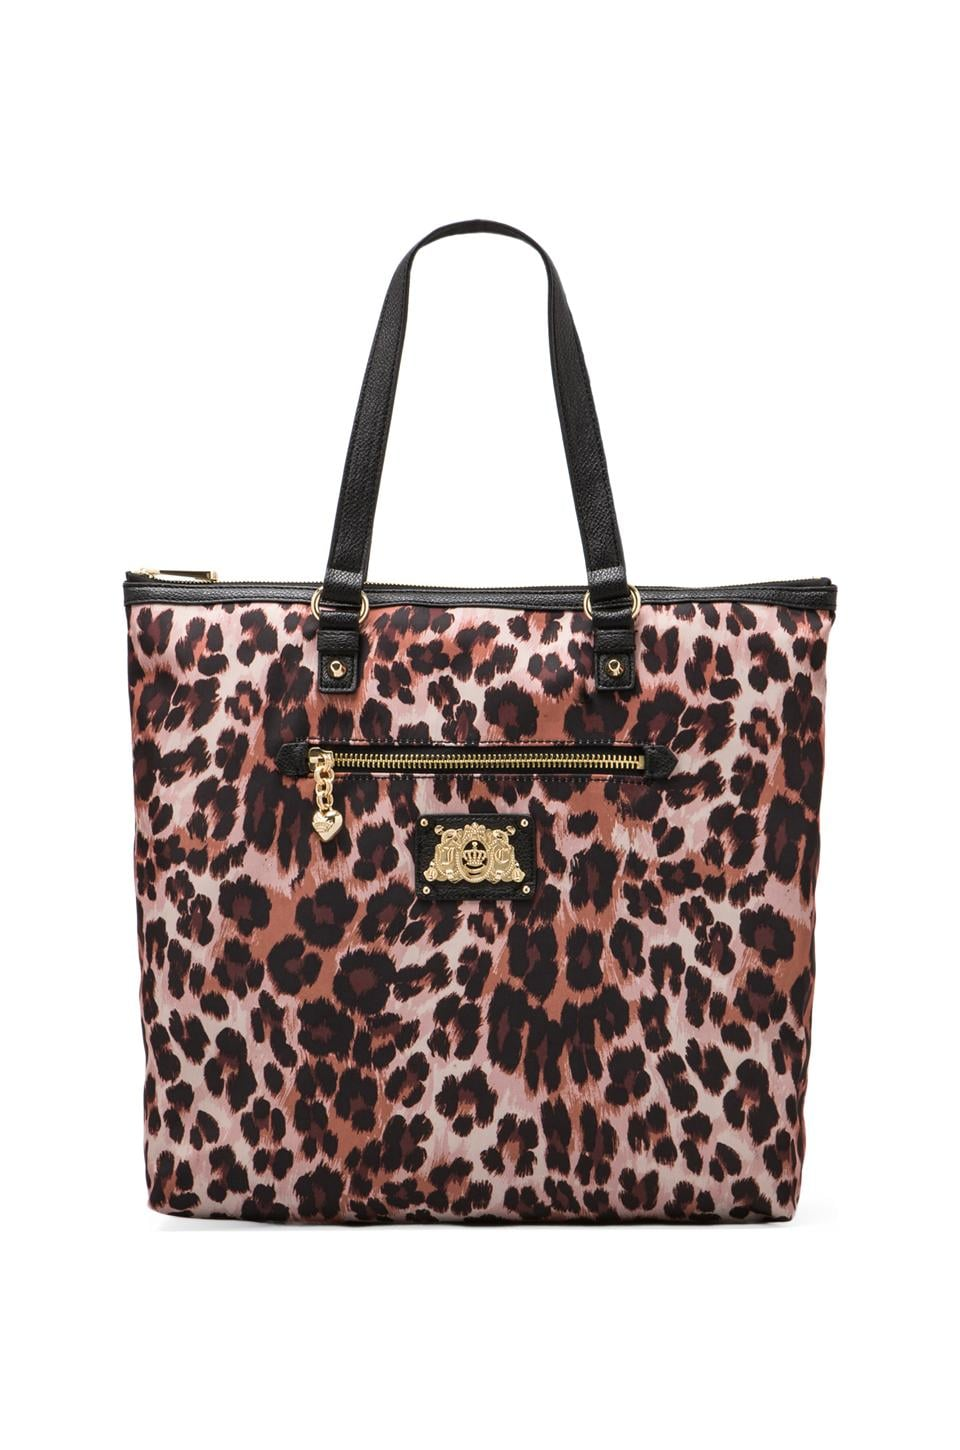 Juicy Couture Malibu Nylon Tote in Brown Leopard